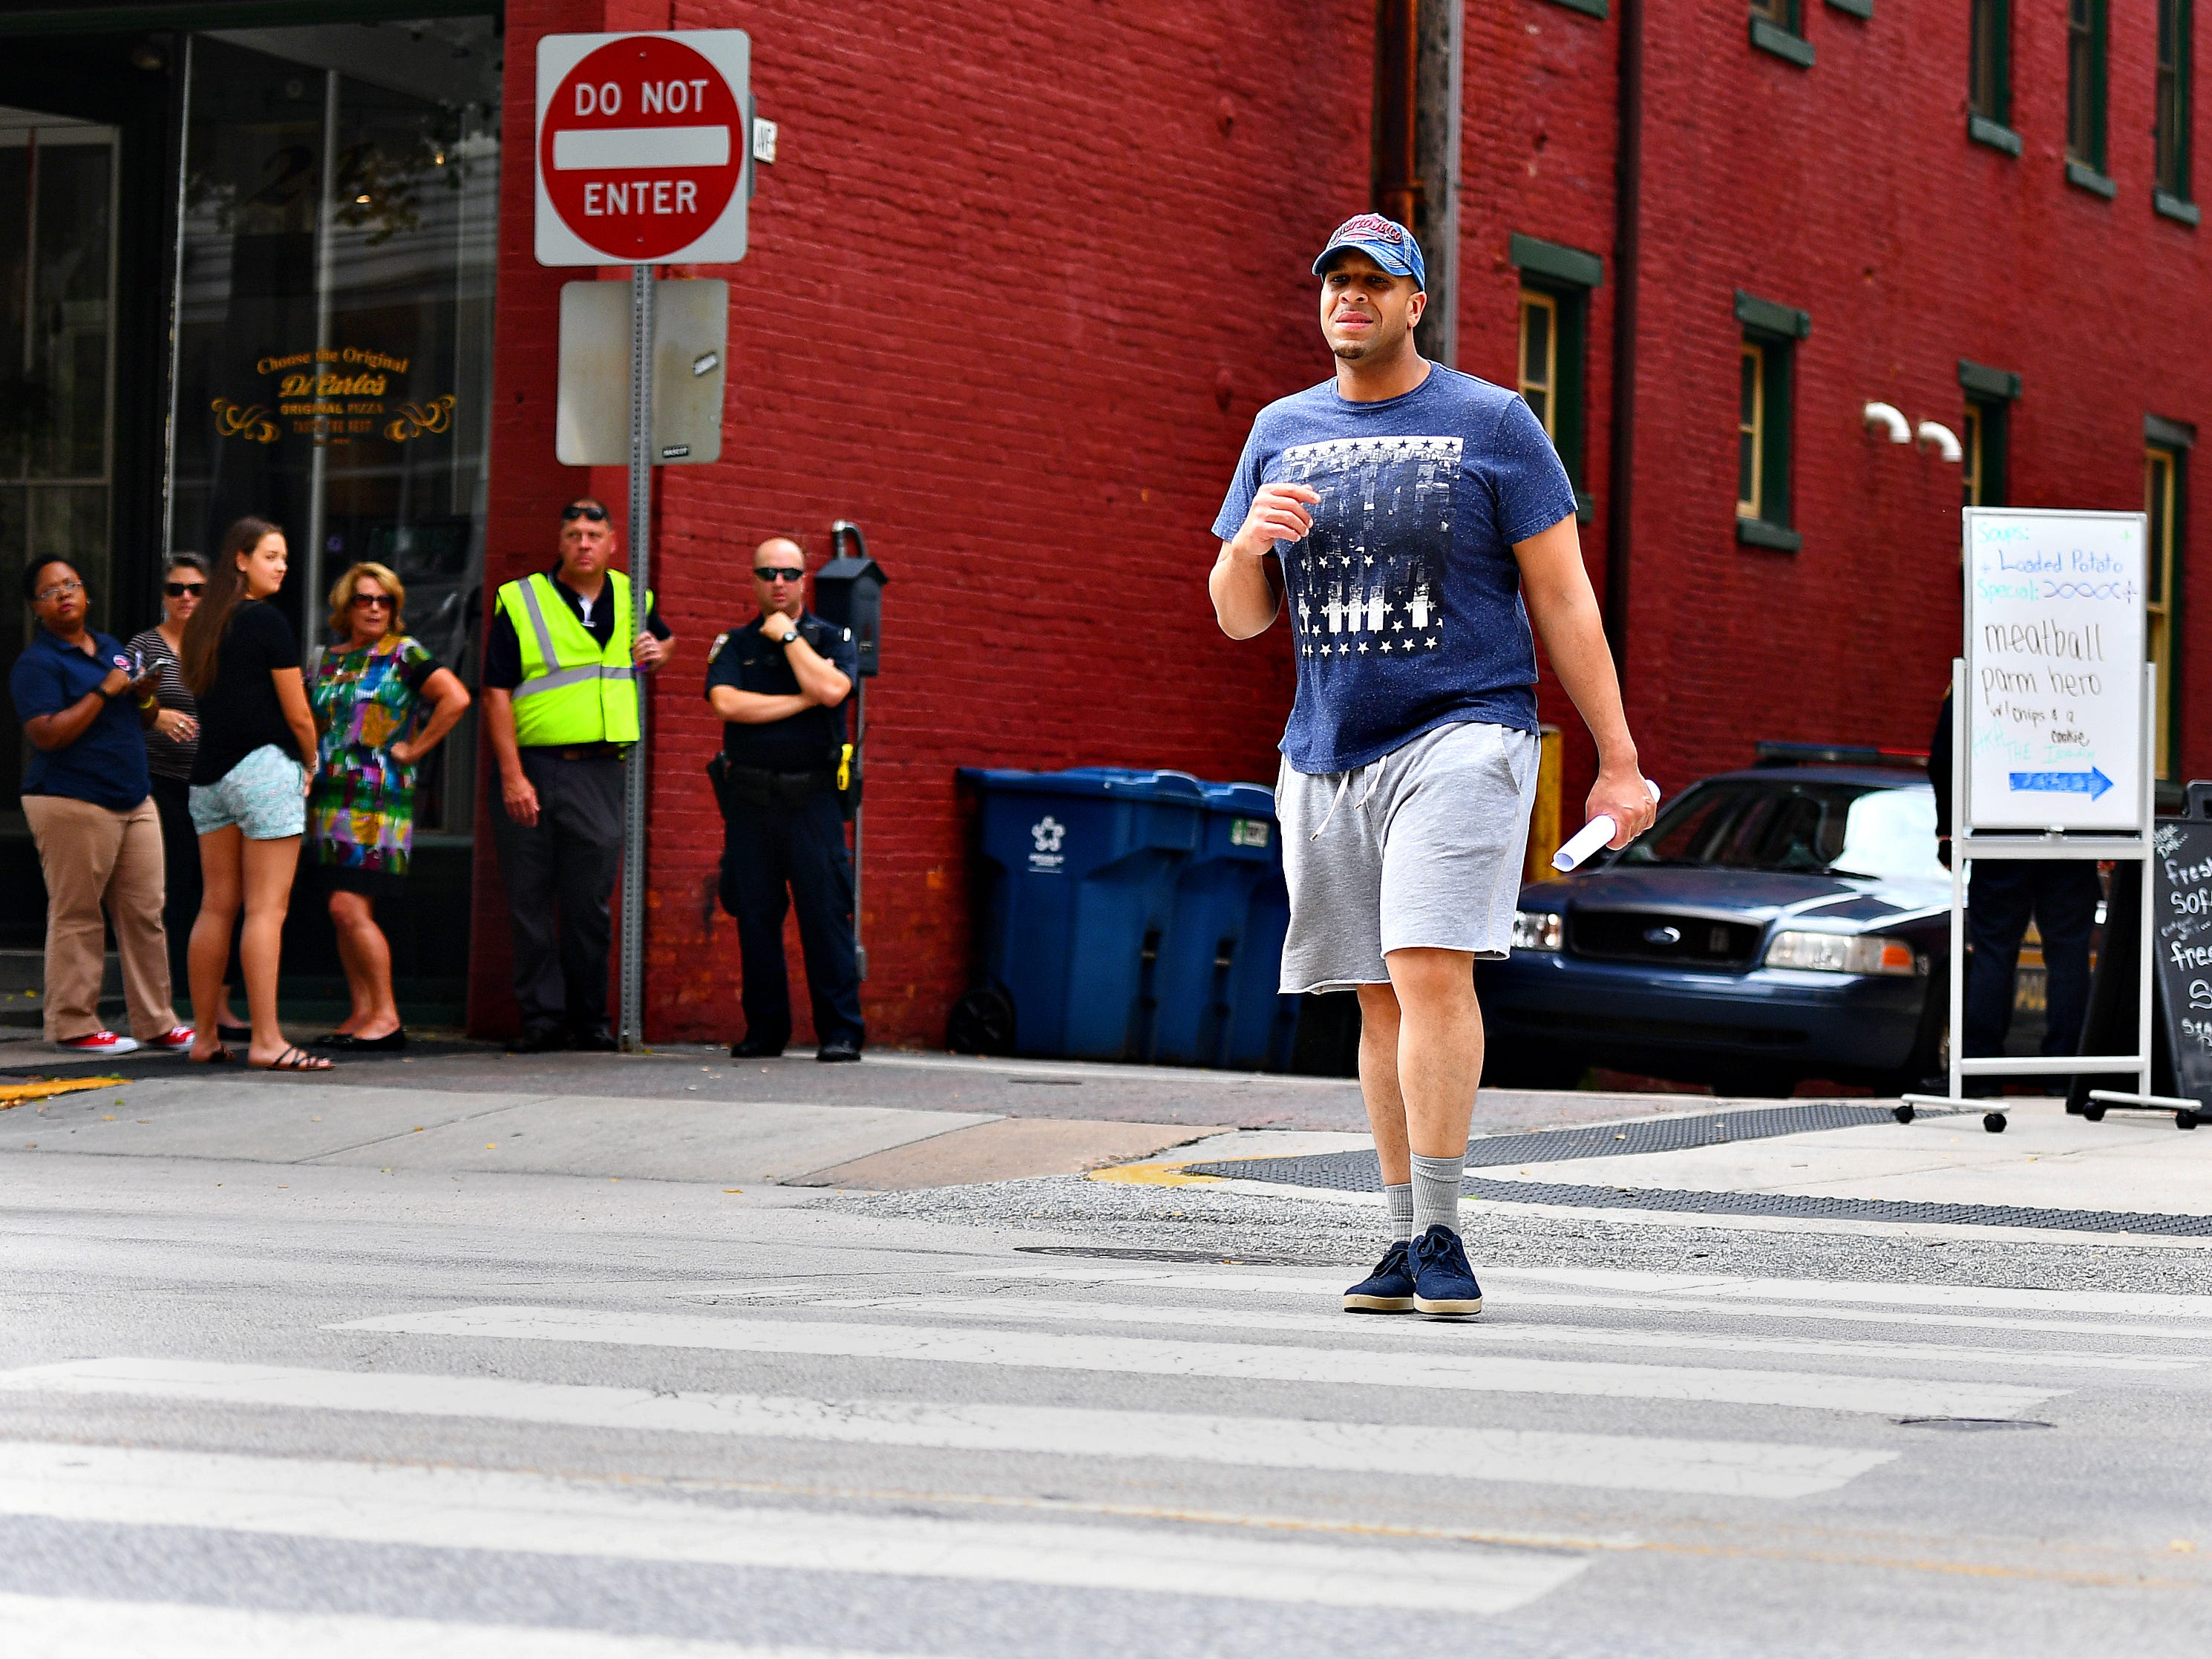 Police Officer Rich Kehler III, left, looks on as David Saulisbury crosses North George Street at Clarke Ave as York City Police conduct pedestrian safety enforcement detail in York City, Friday, Aug. 10, 2018. Dawn J. Sagert